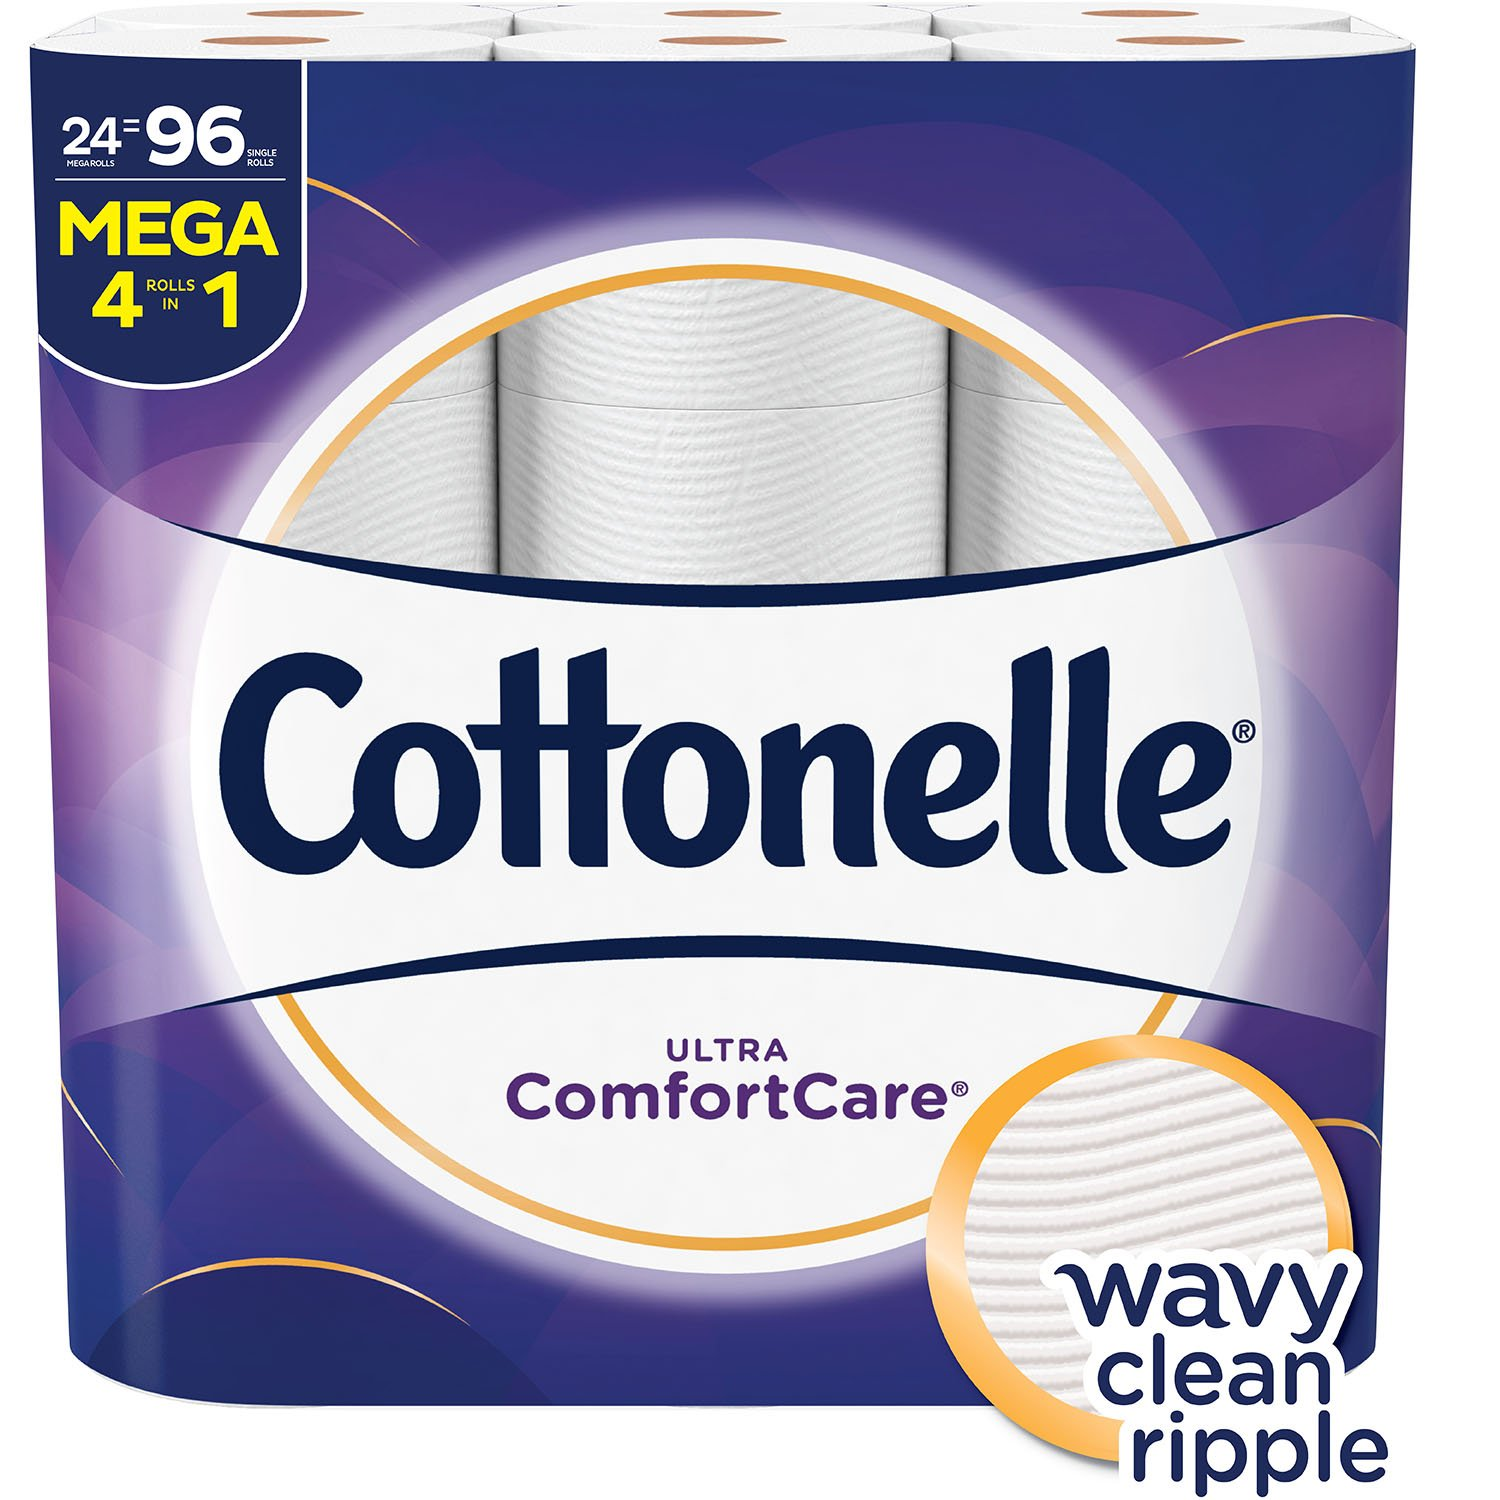 Cottonelle Ultra ComfortCare Toilet Paper, Soft Bath Tissue, Septic-Safe, 24 Mega Rolls by Cottonelle